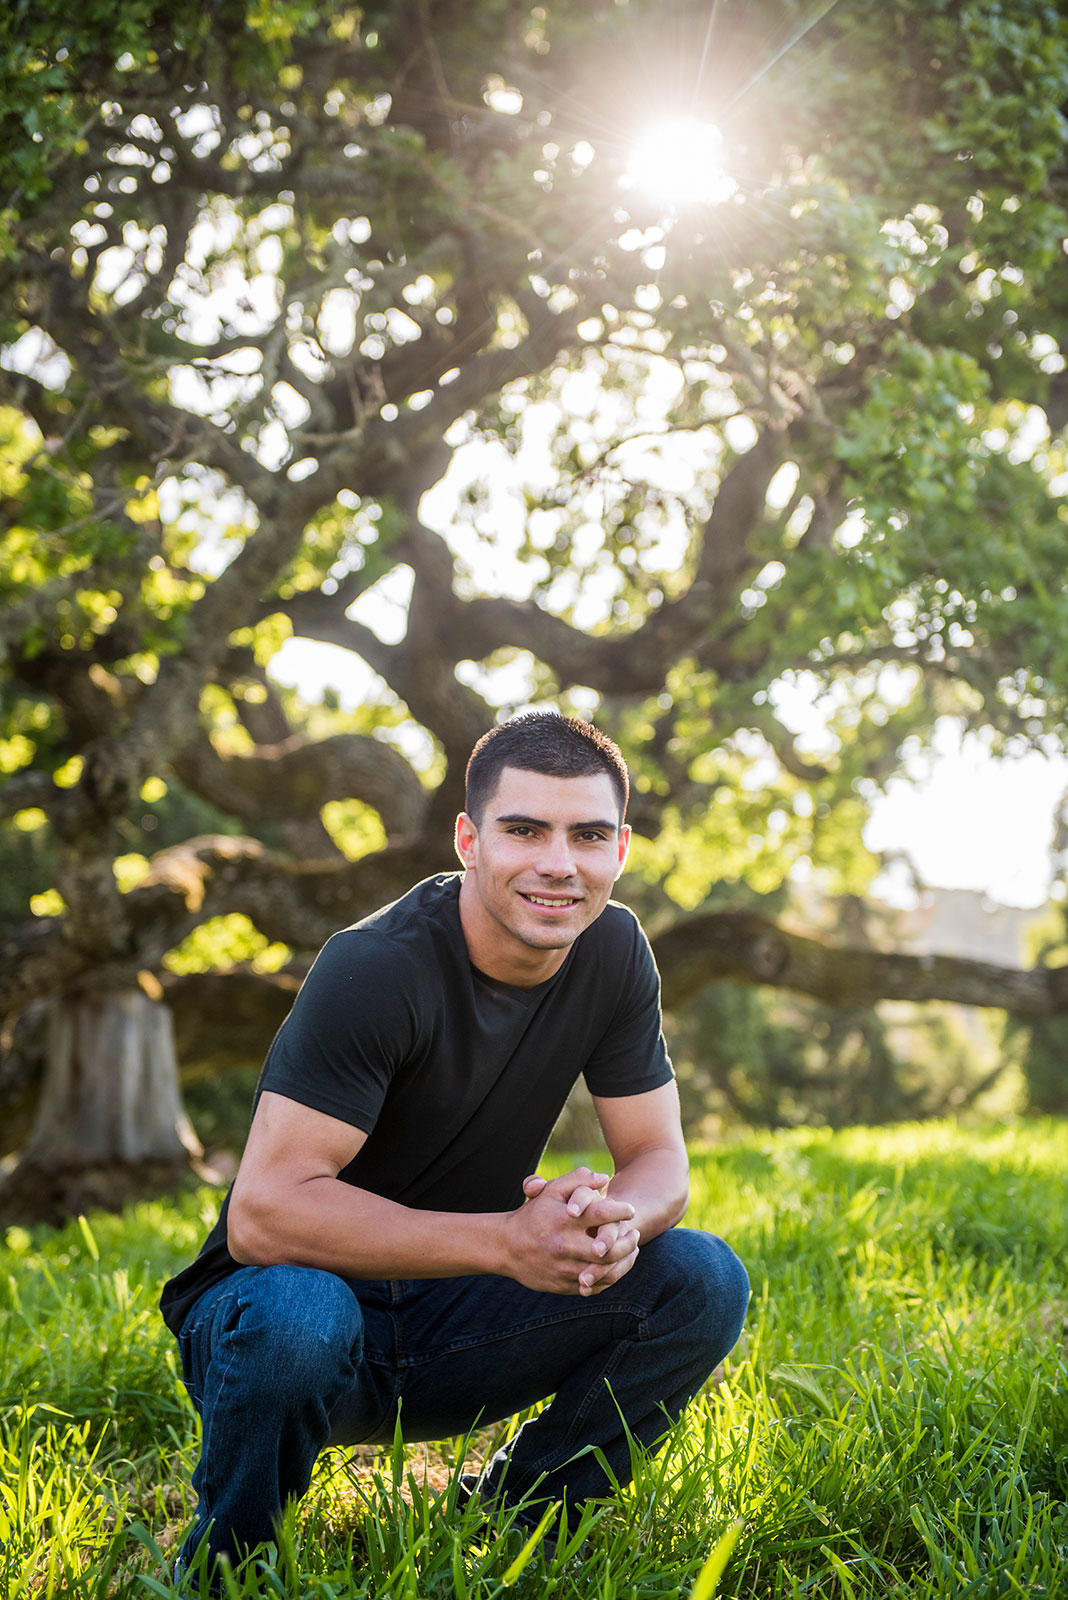 sotelo-senior-hollister-photography-05